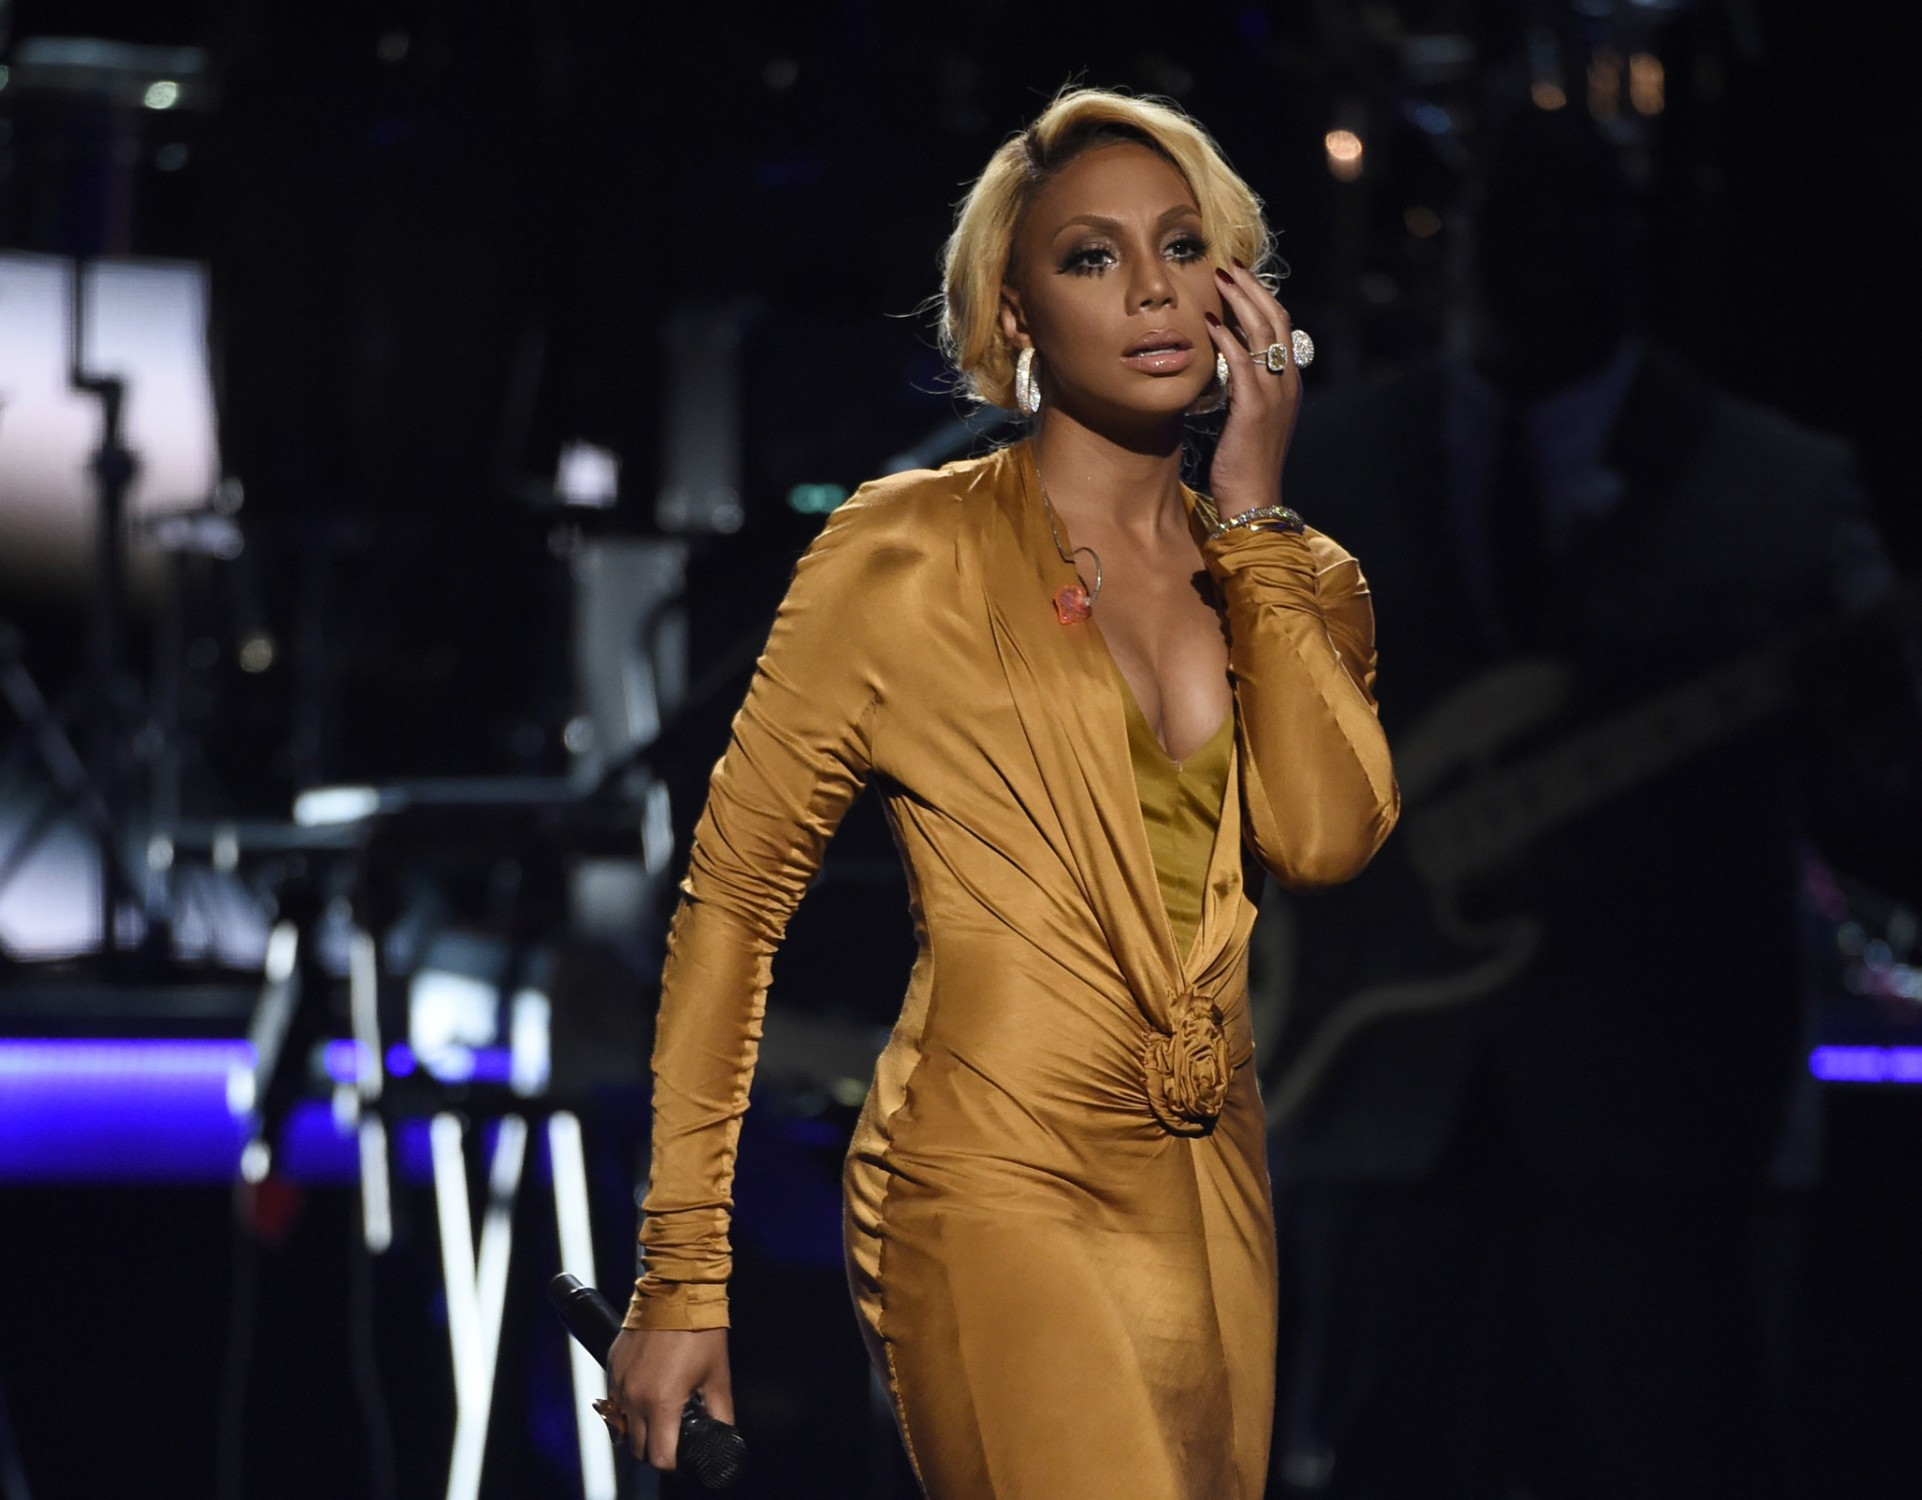 Tamar Braxton's Fans Say She Changed Her Look Following Kandi Burruss' Tour With The Dungeon Show